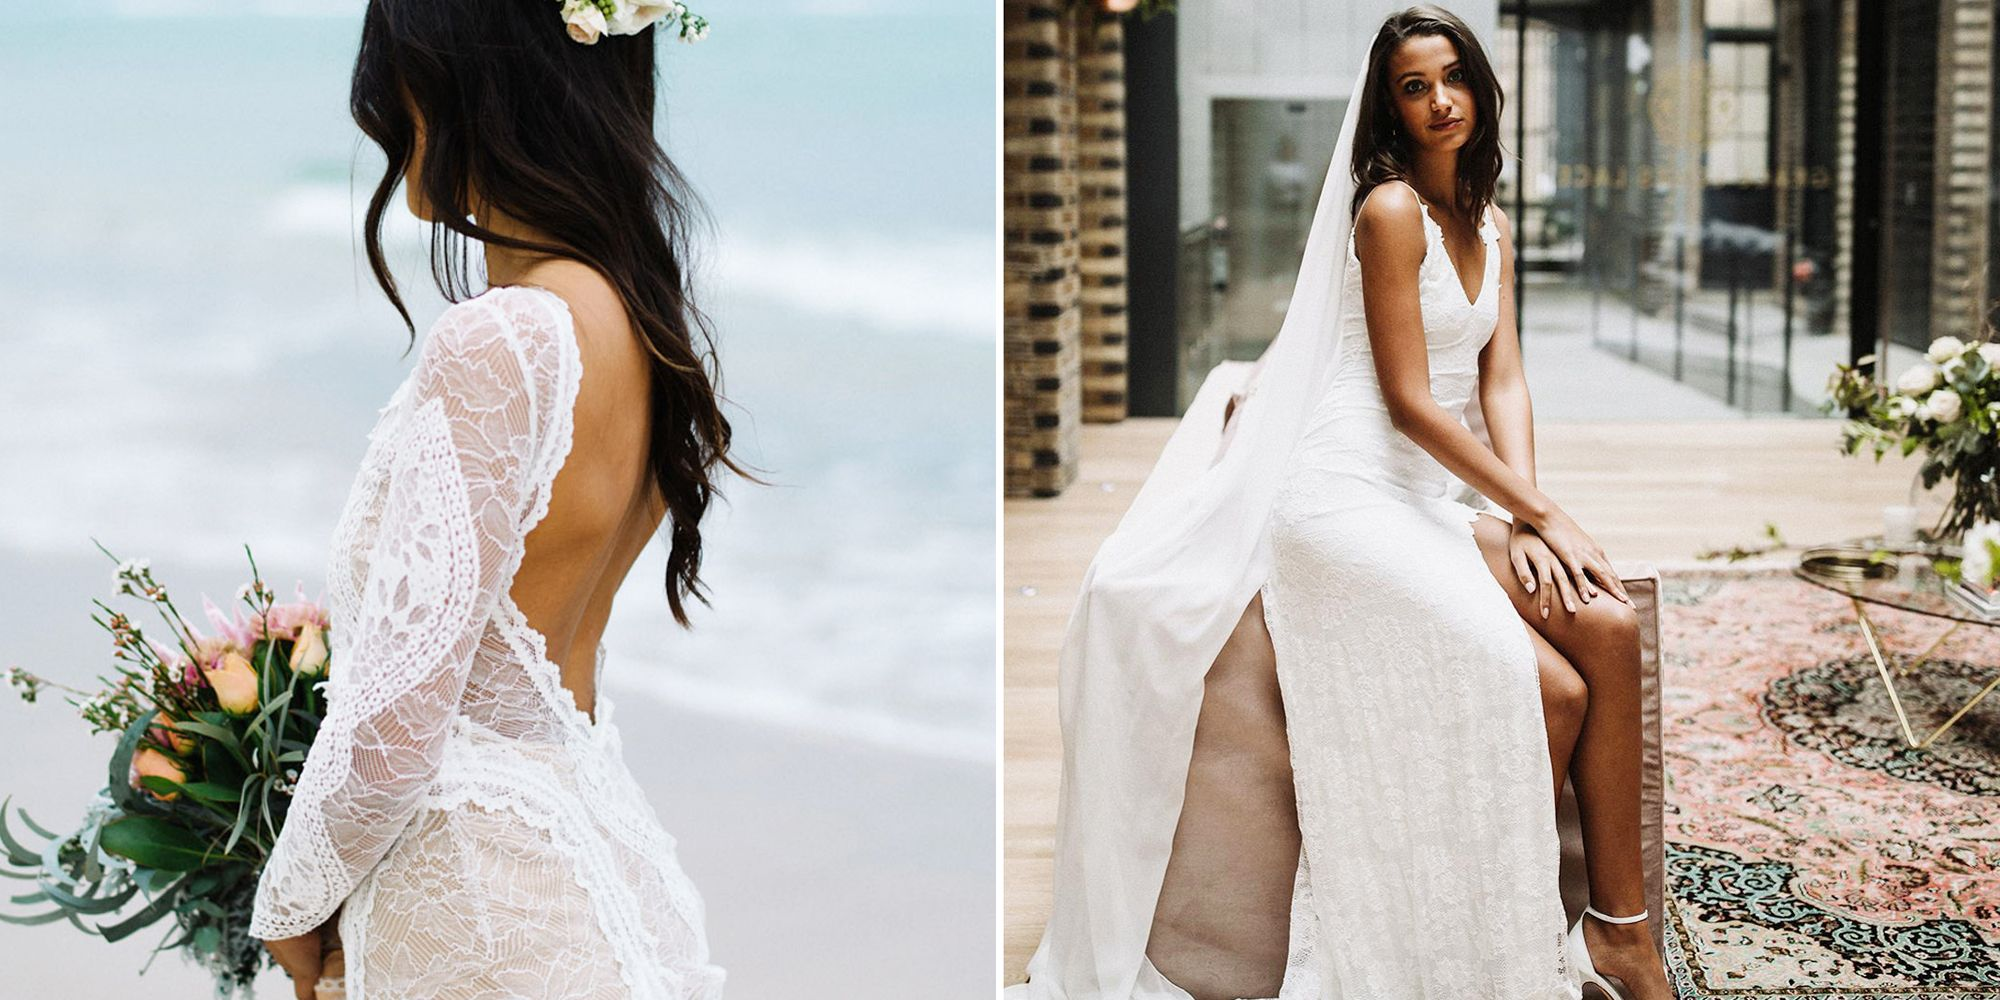 13 Things Every Woman Should Know Before Shopping For A Wedding Dress Online